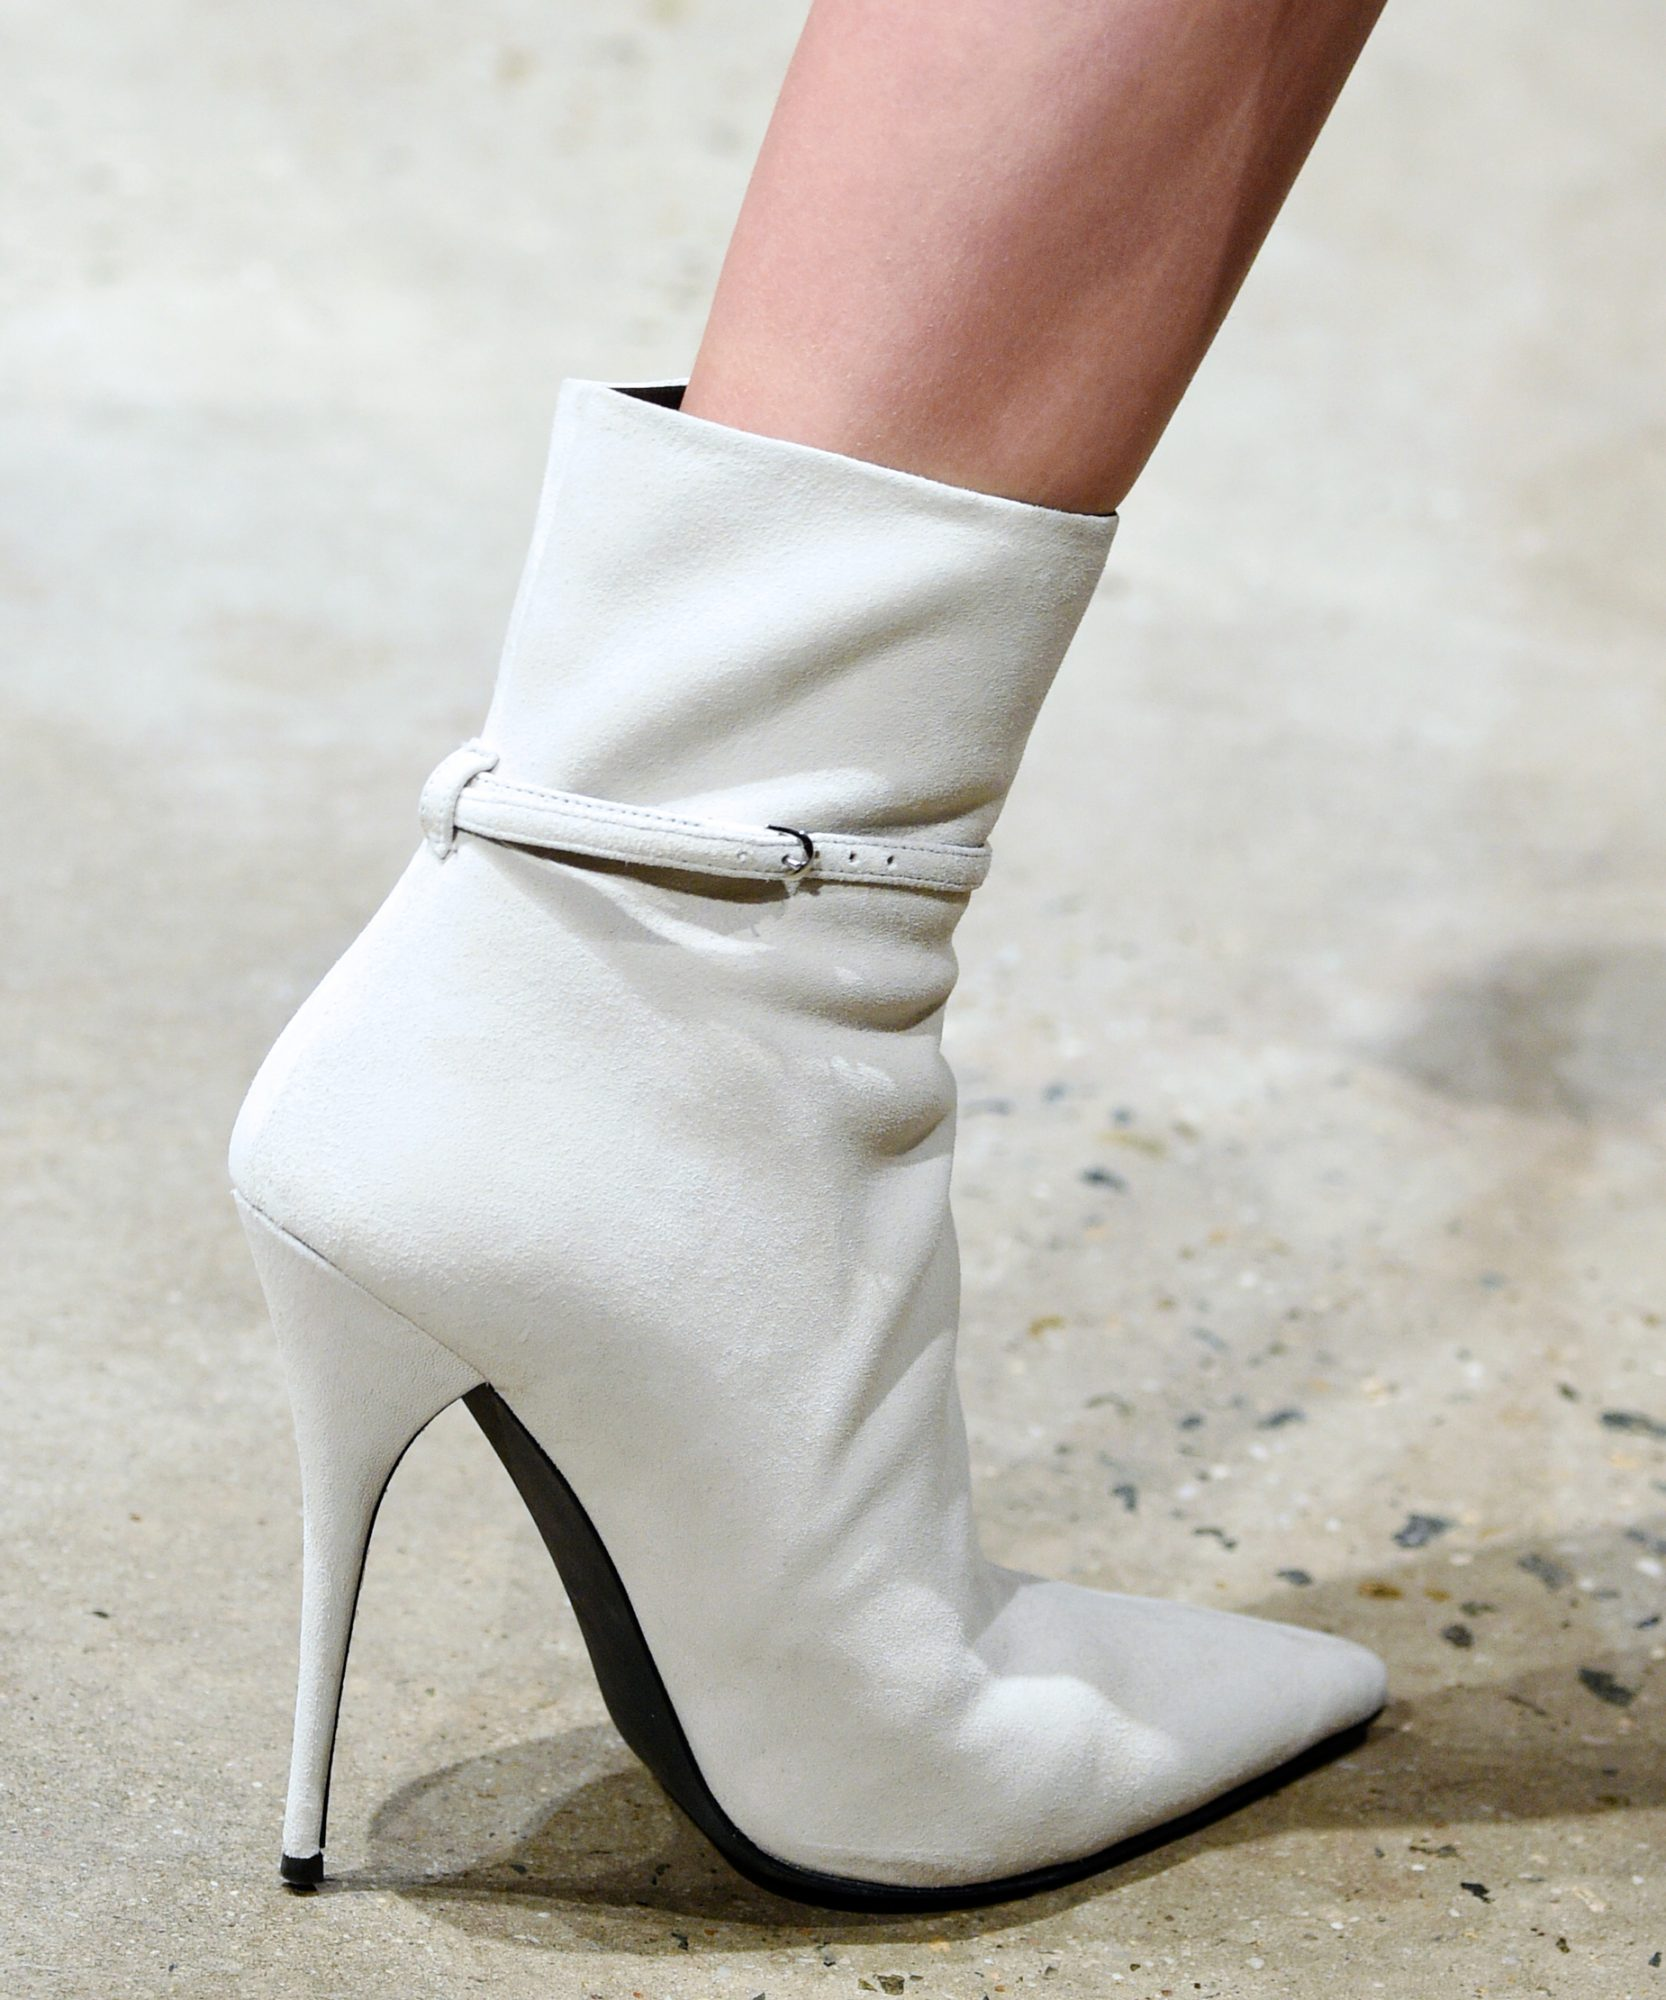 <p>DAY 6: NARCISO RODRIGUEZ ANKLE BOOTIE</p>